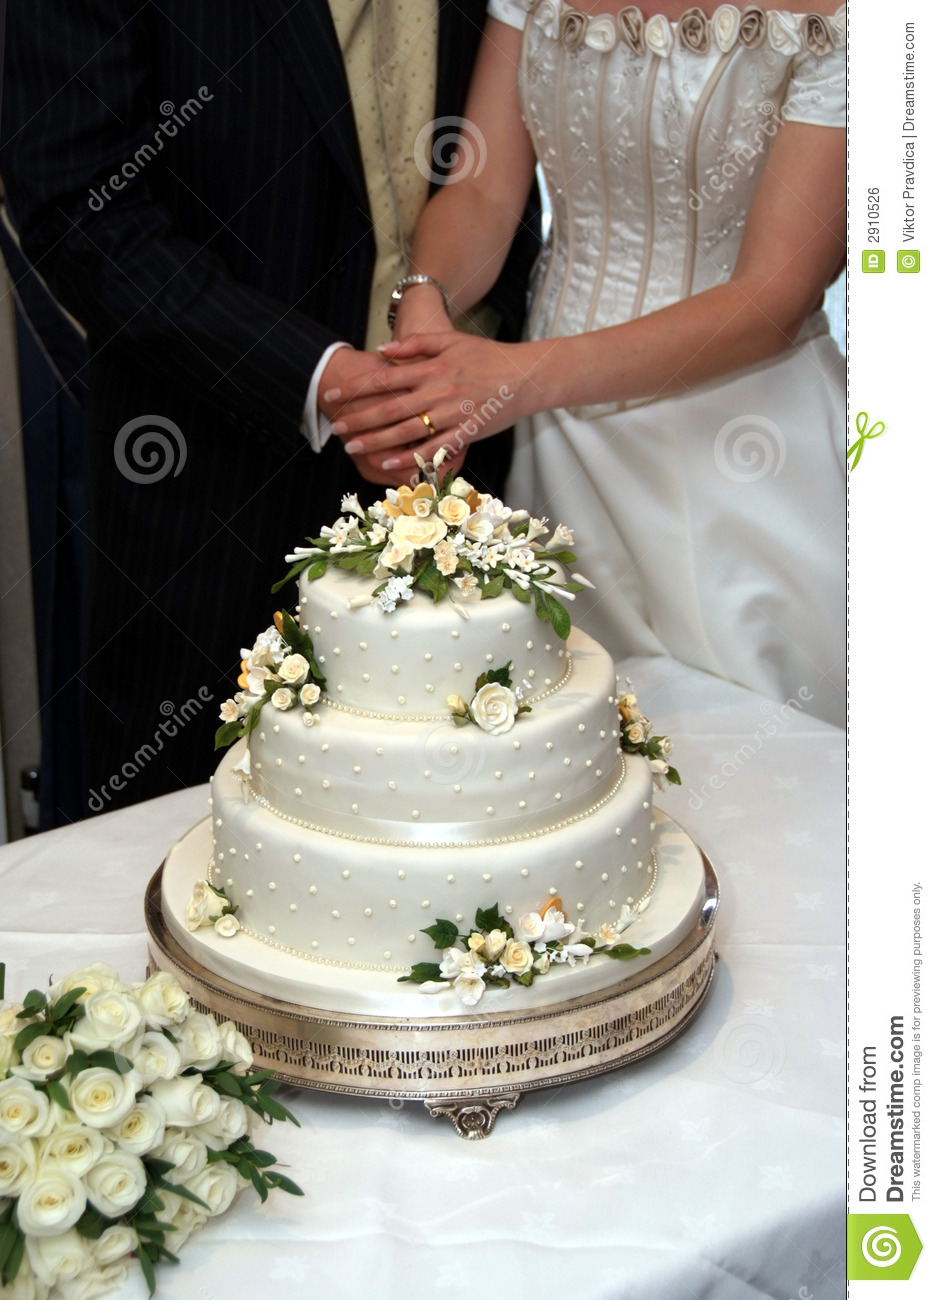 how to cut wedding cake bride and groom cutting the wedding cake stock photo image of fashion 15642